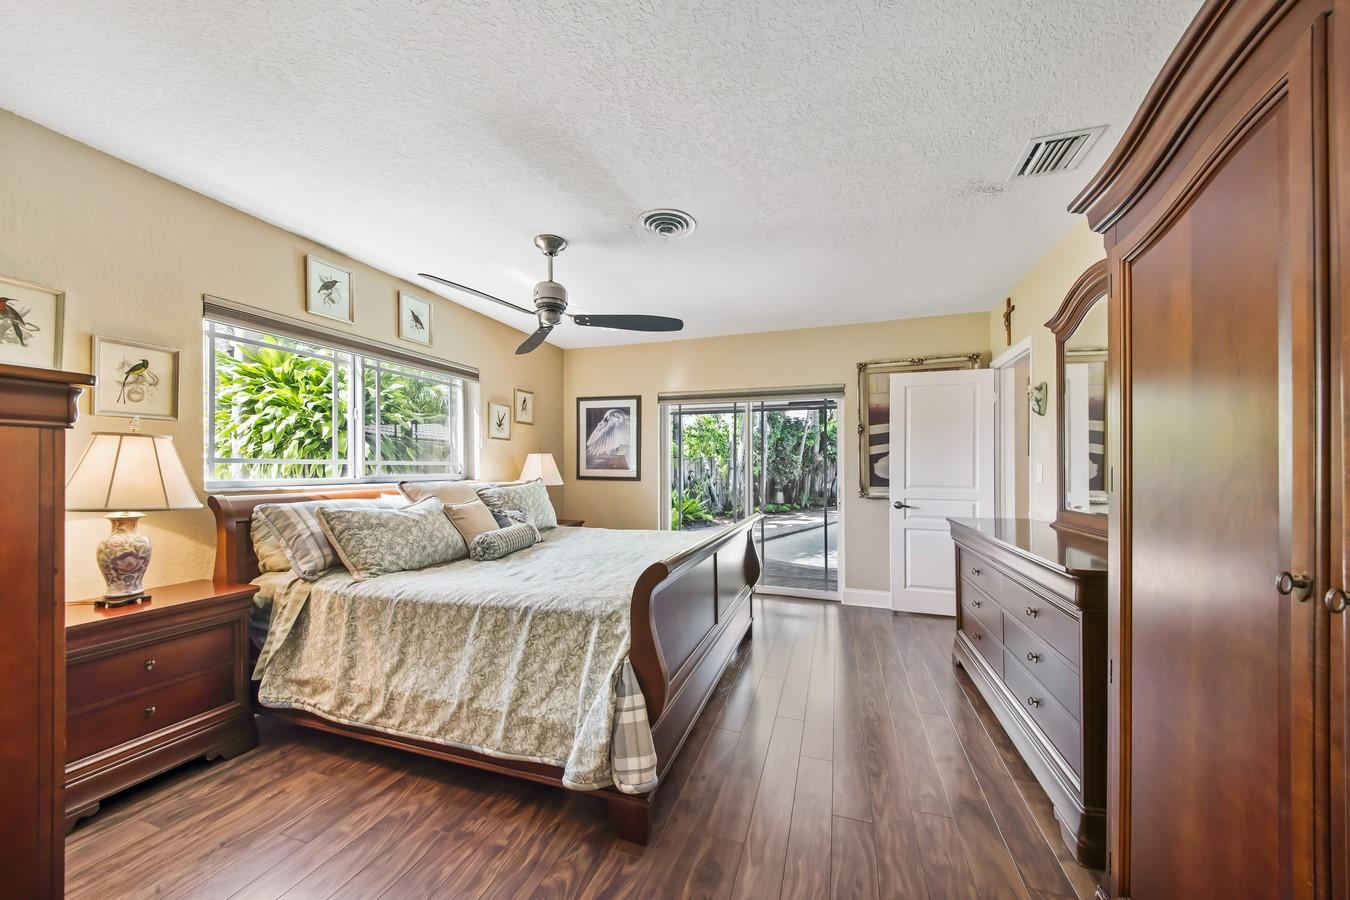 5161 NE 17th Terrace Fort Lauderdale, FL 33334 small photo 15